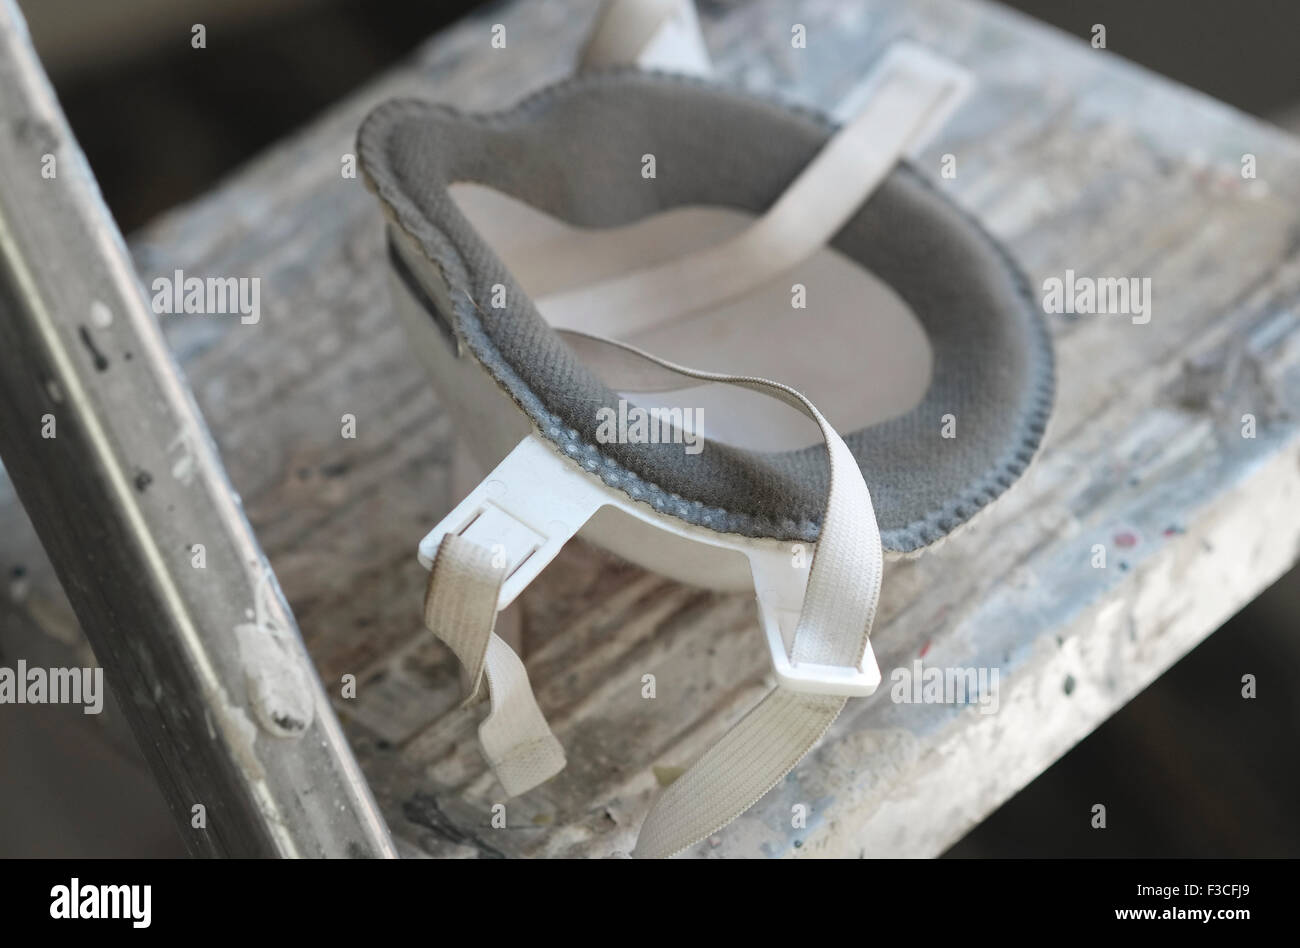 do it yourself dust face mask on step ladder - Stock Image